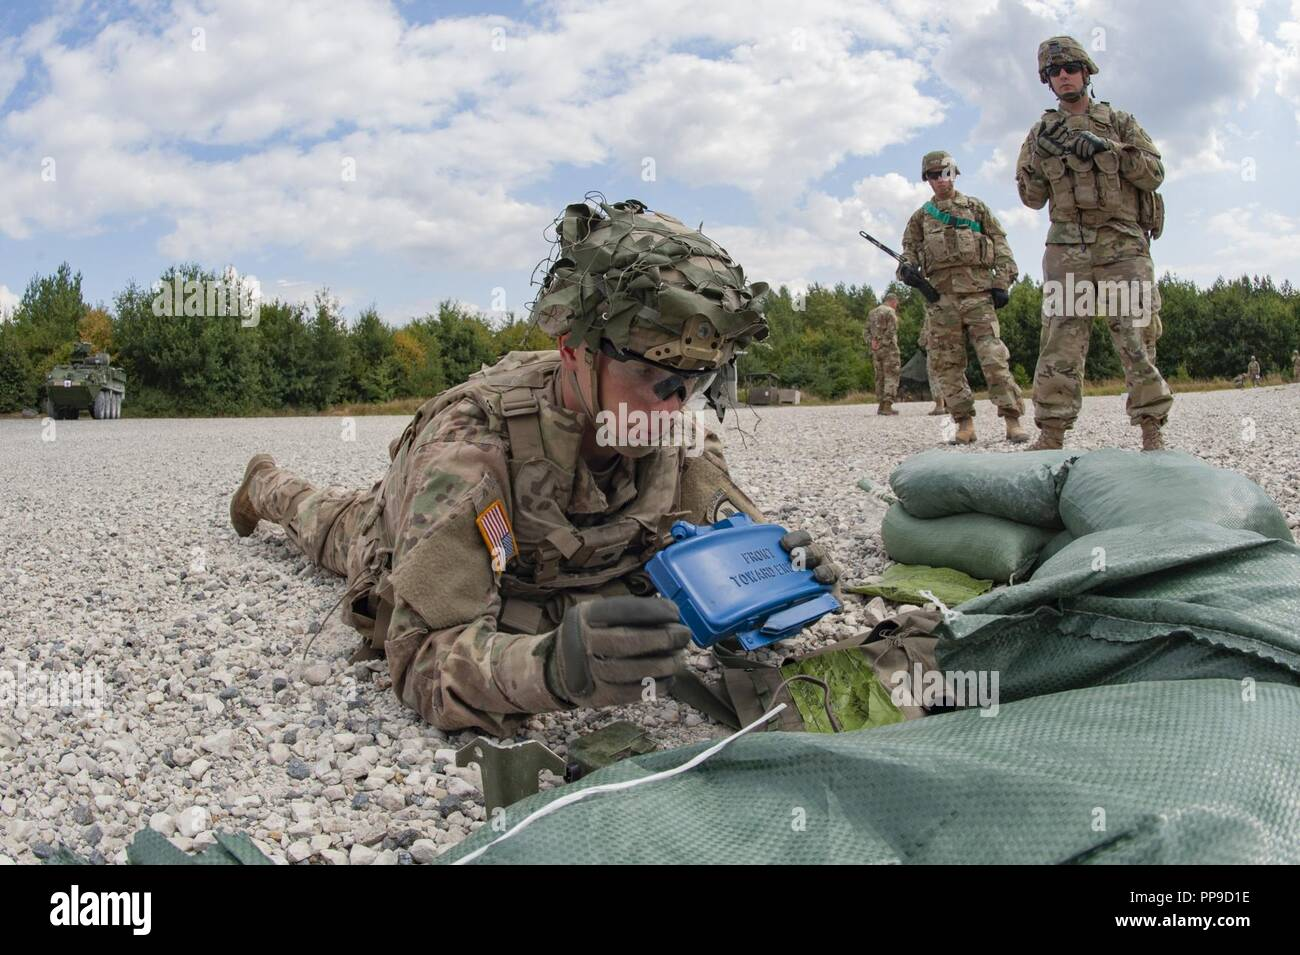 Spc  Jacob Root, 173rd Infantry Brigade Combat Team, inspects a